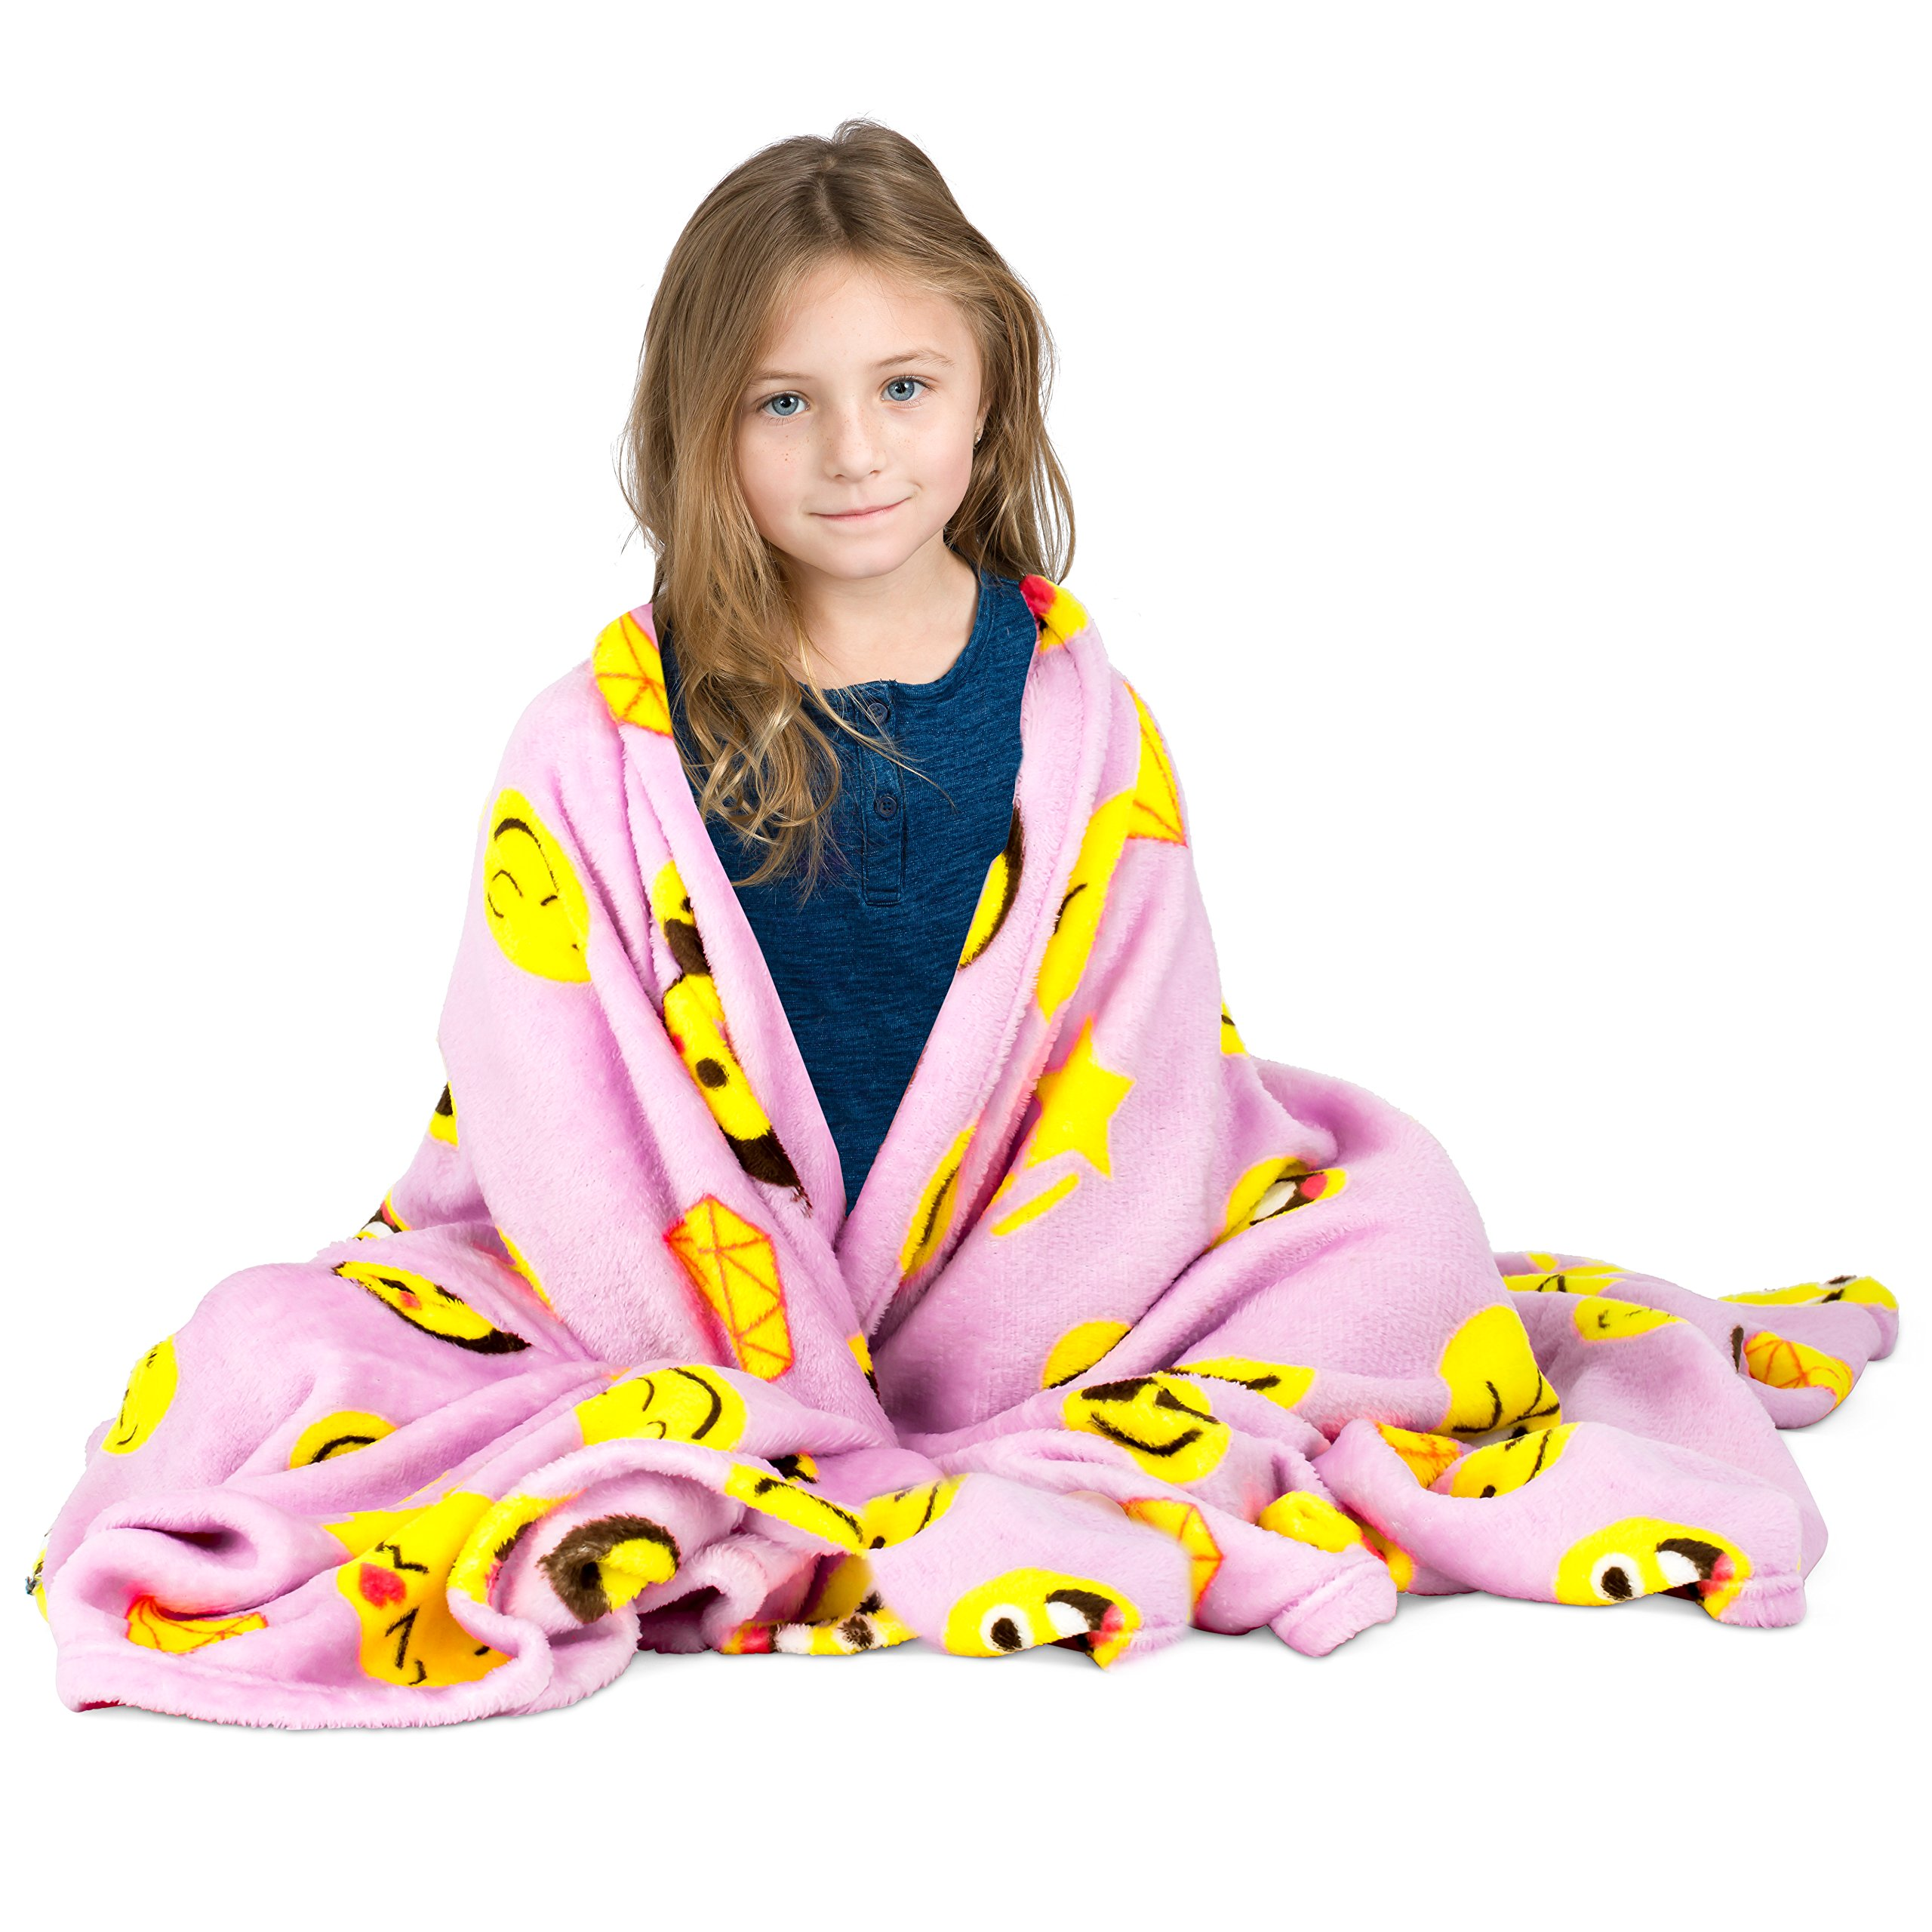 Koltose by Mash Pink Emoji Throw Blanket, Adorable Soft Large Fluffy Lightweight Emoticon Blanket for Girls and Boys, Toddlers Kids Teens and Young Adults (50in x 60in) by Koltose by Mash (Image #2)